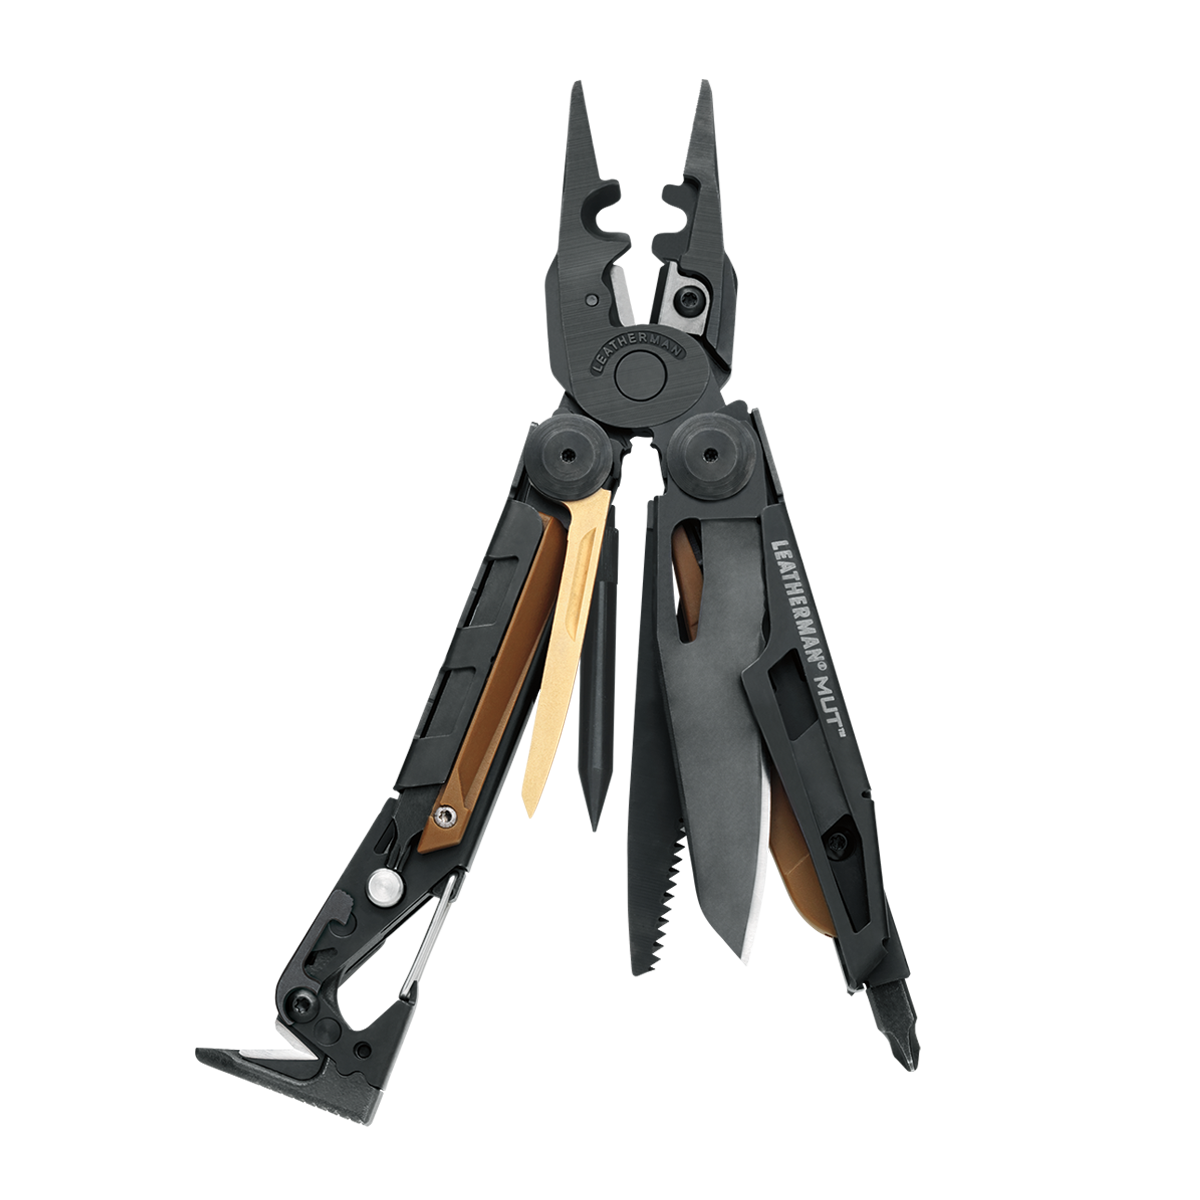 Leatherman mut eod multi-tool, open view, 15 tools, black